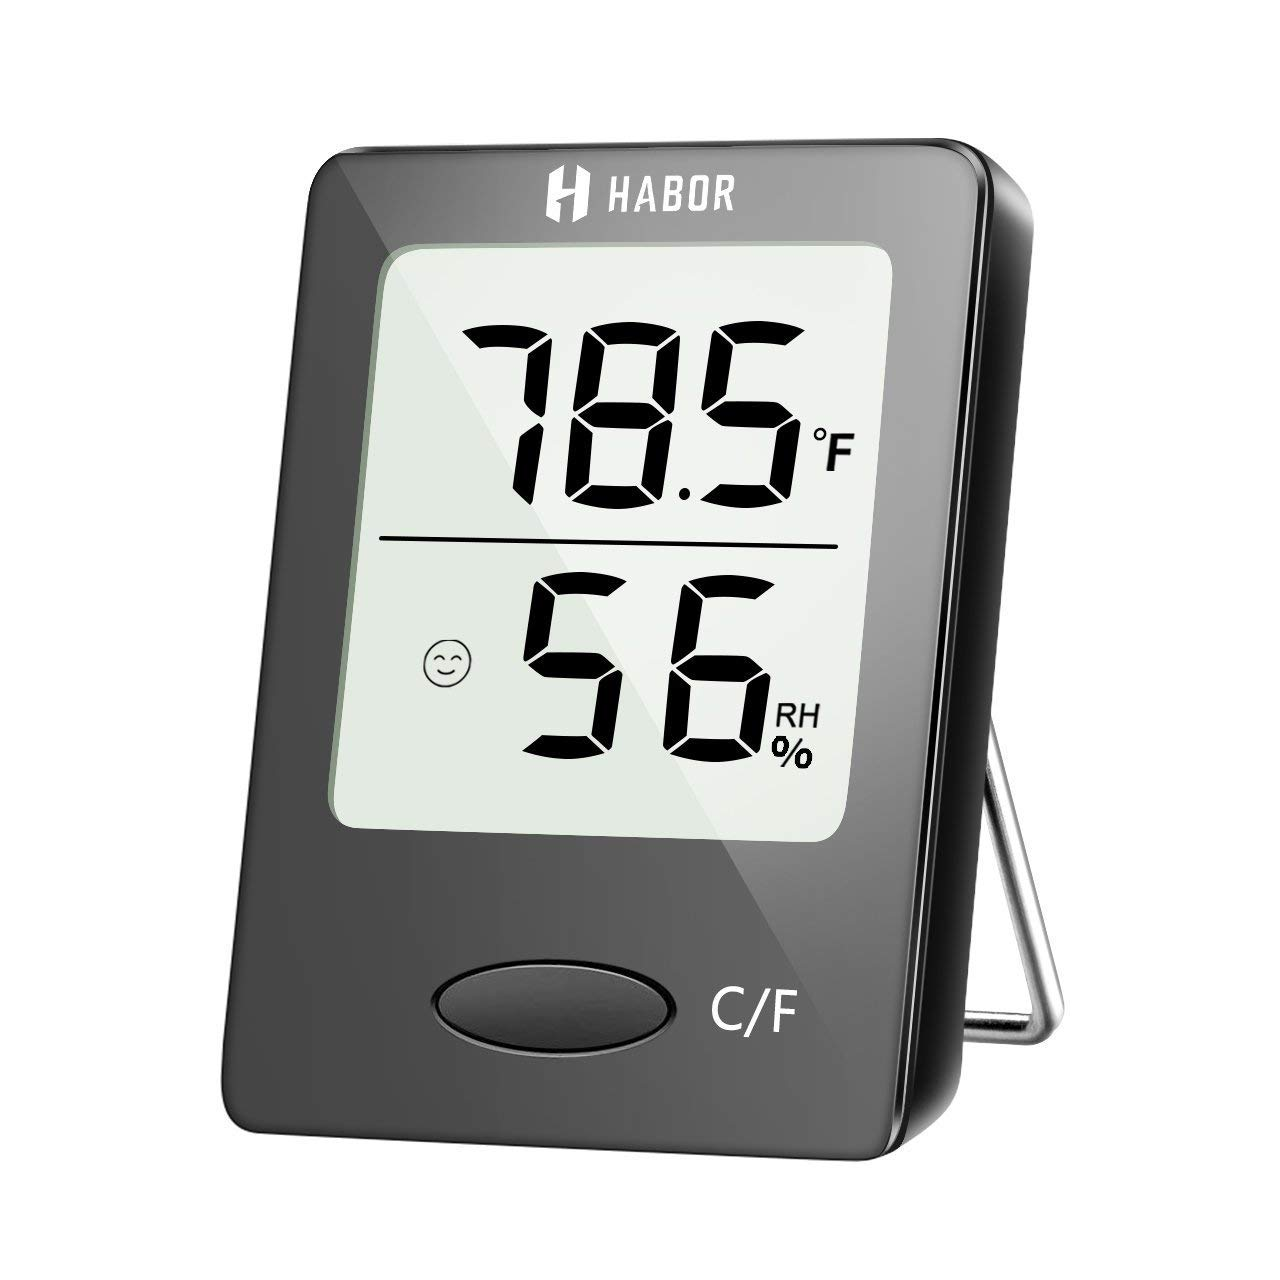 Habor Hygrometer Thermometer Temperature Greenhouse